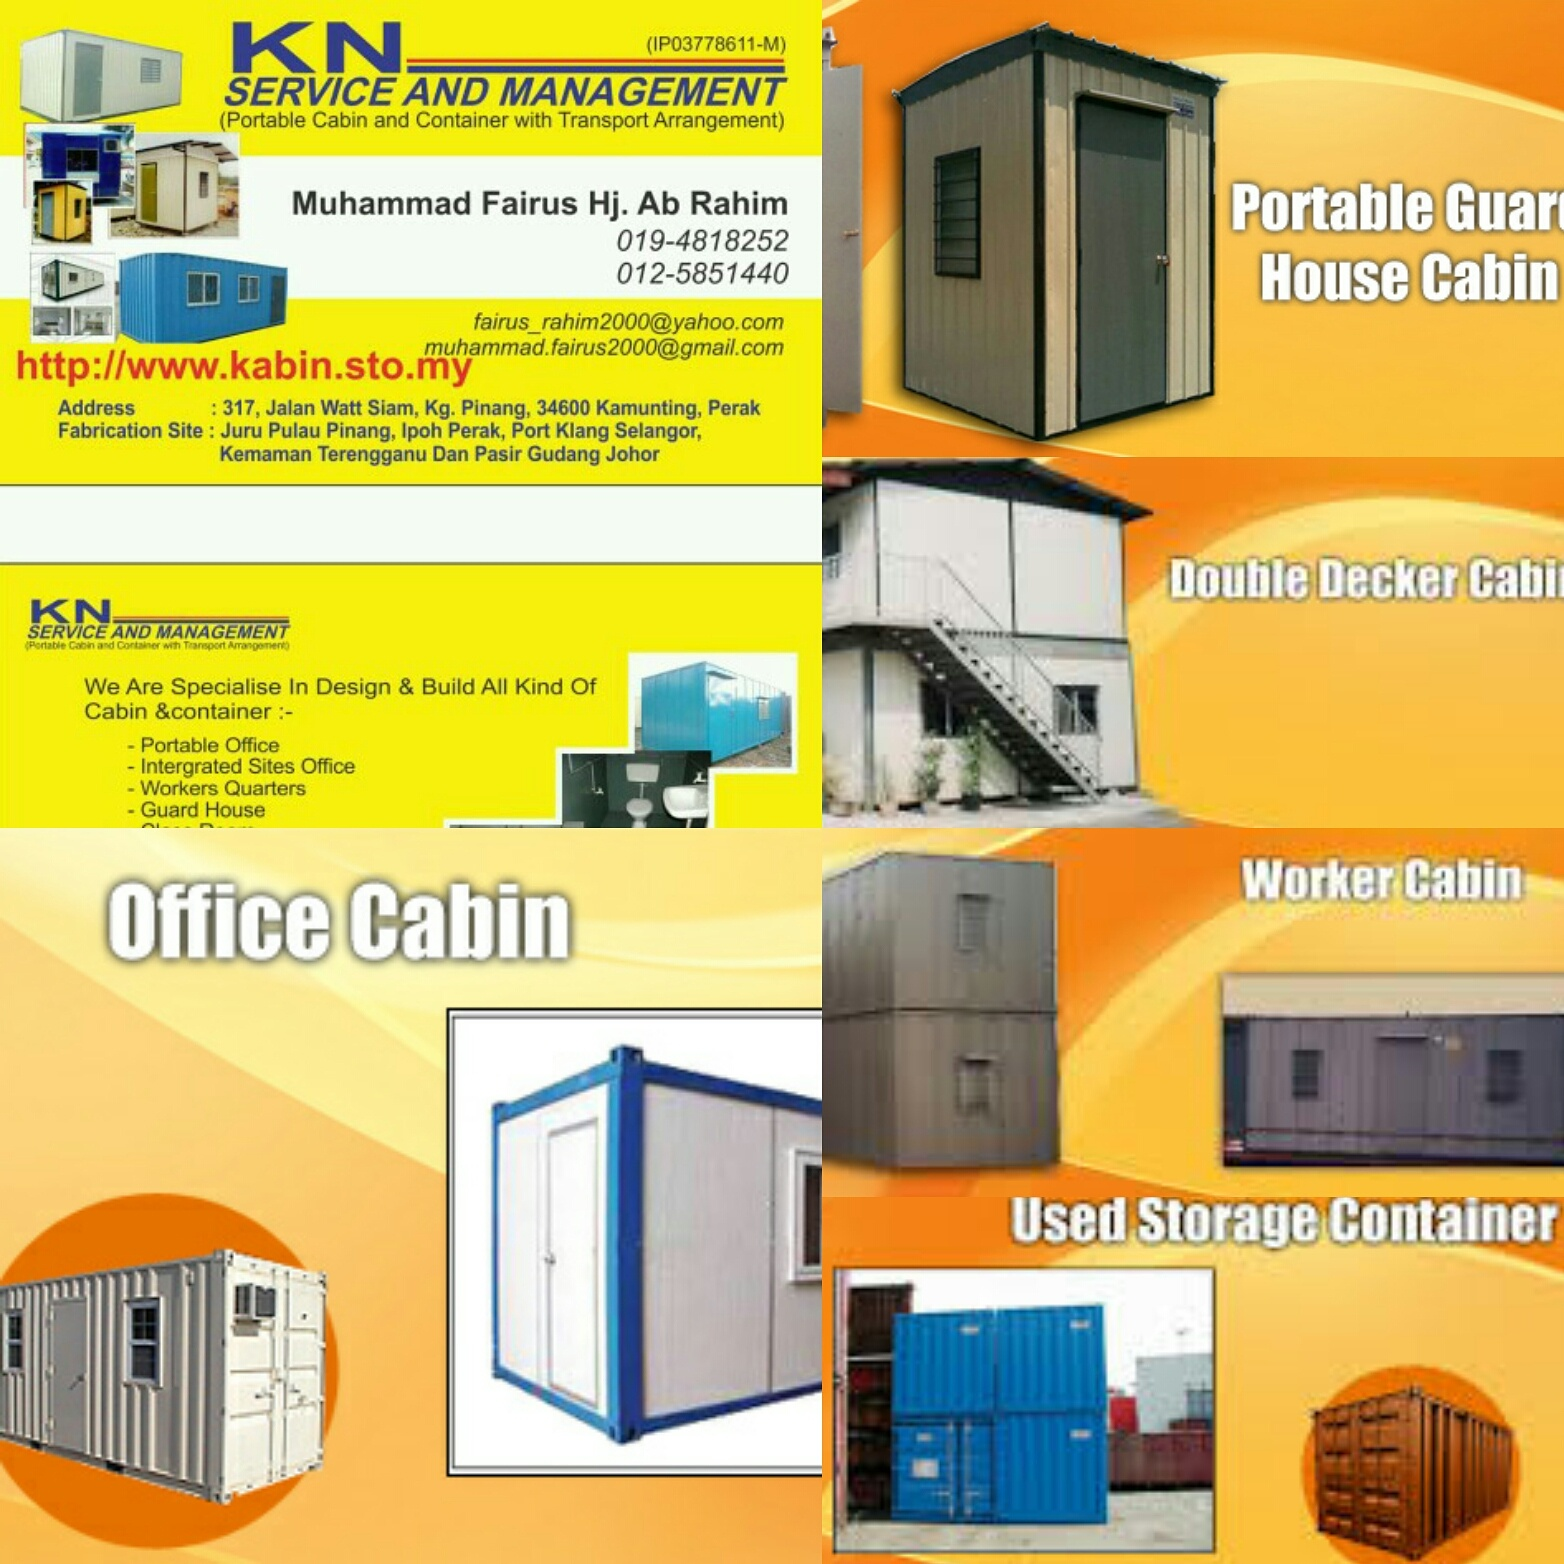 KN SERVICE AND MANAGEMENT